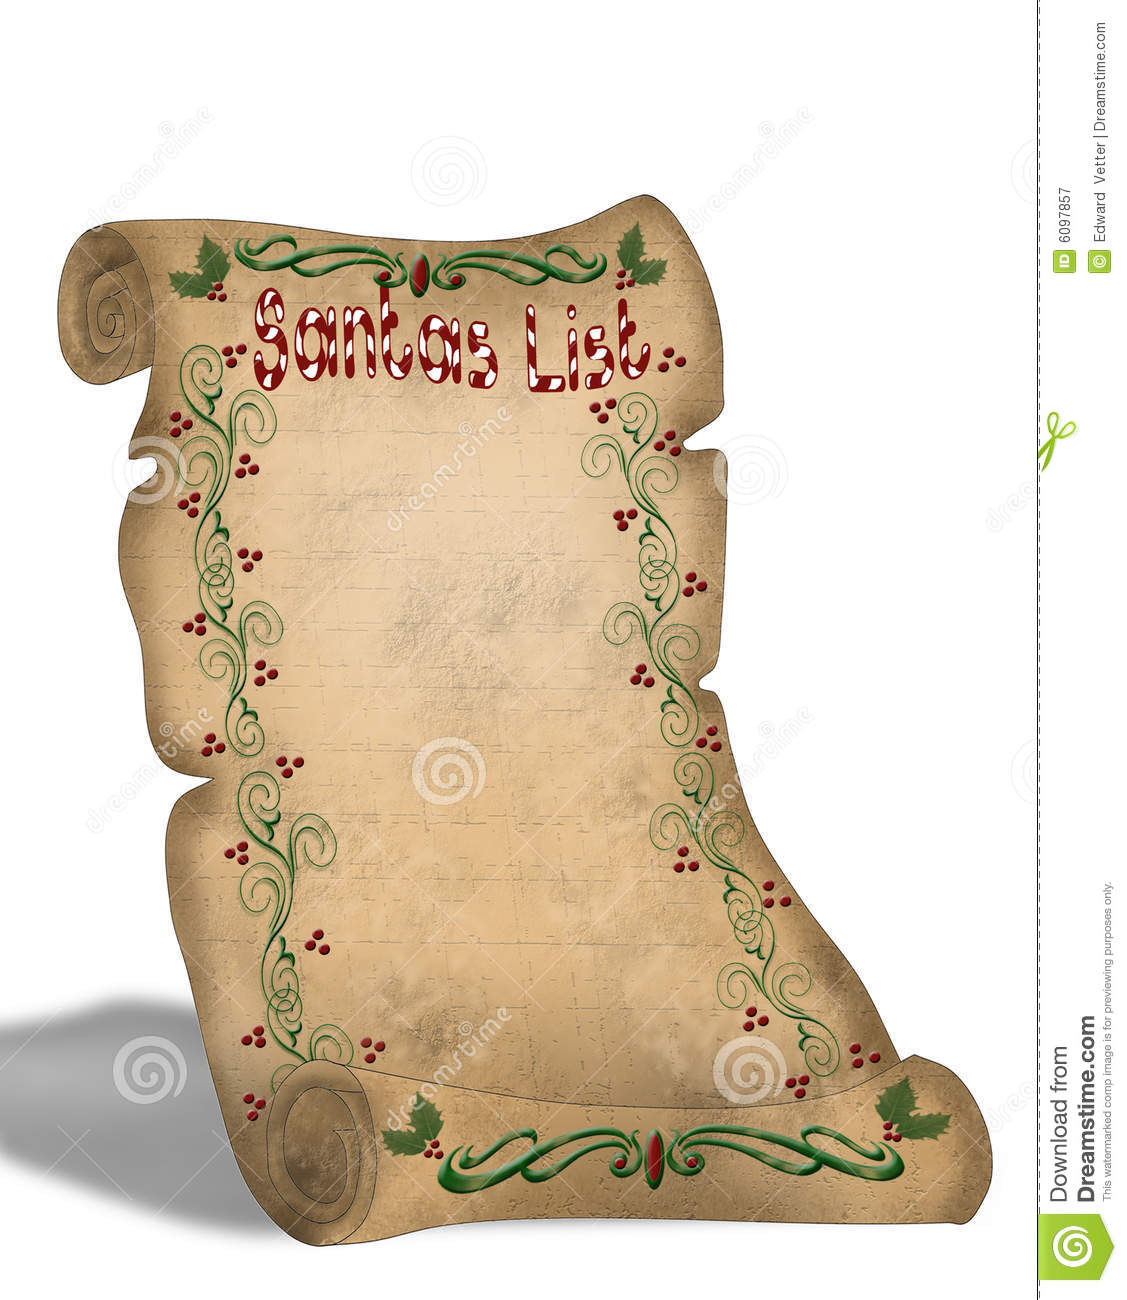 Santas List On Old Parchment Scroll Stock Illustration Illustration Of Antique Holiday 6097857